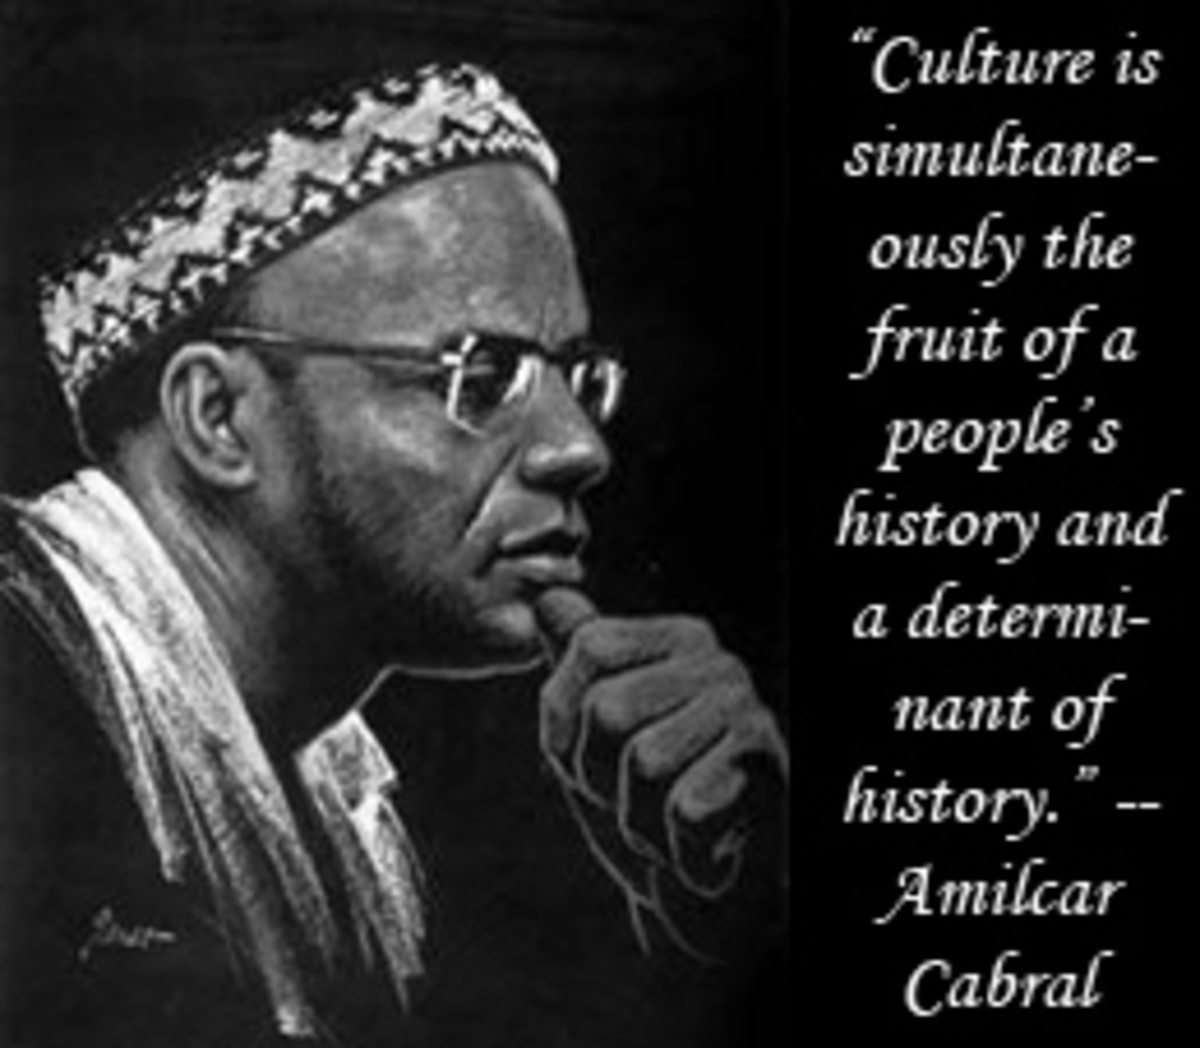 Culture And History As Liberation Tools: On his return to Guinea, Cabral and a handful of others set up a political party, the PAIGC. They aimed to turn the colonial system upside down by working with the people of Guinea to improve the conditions of